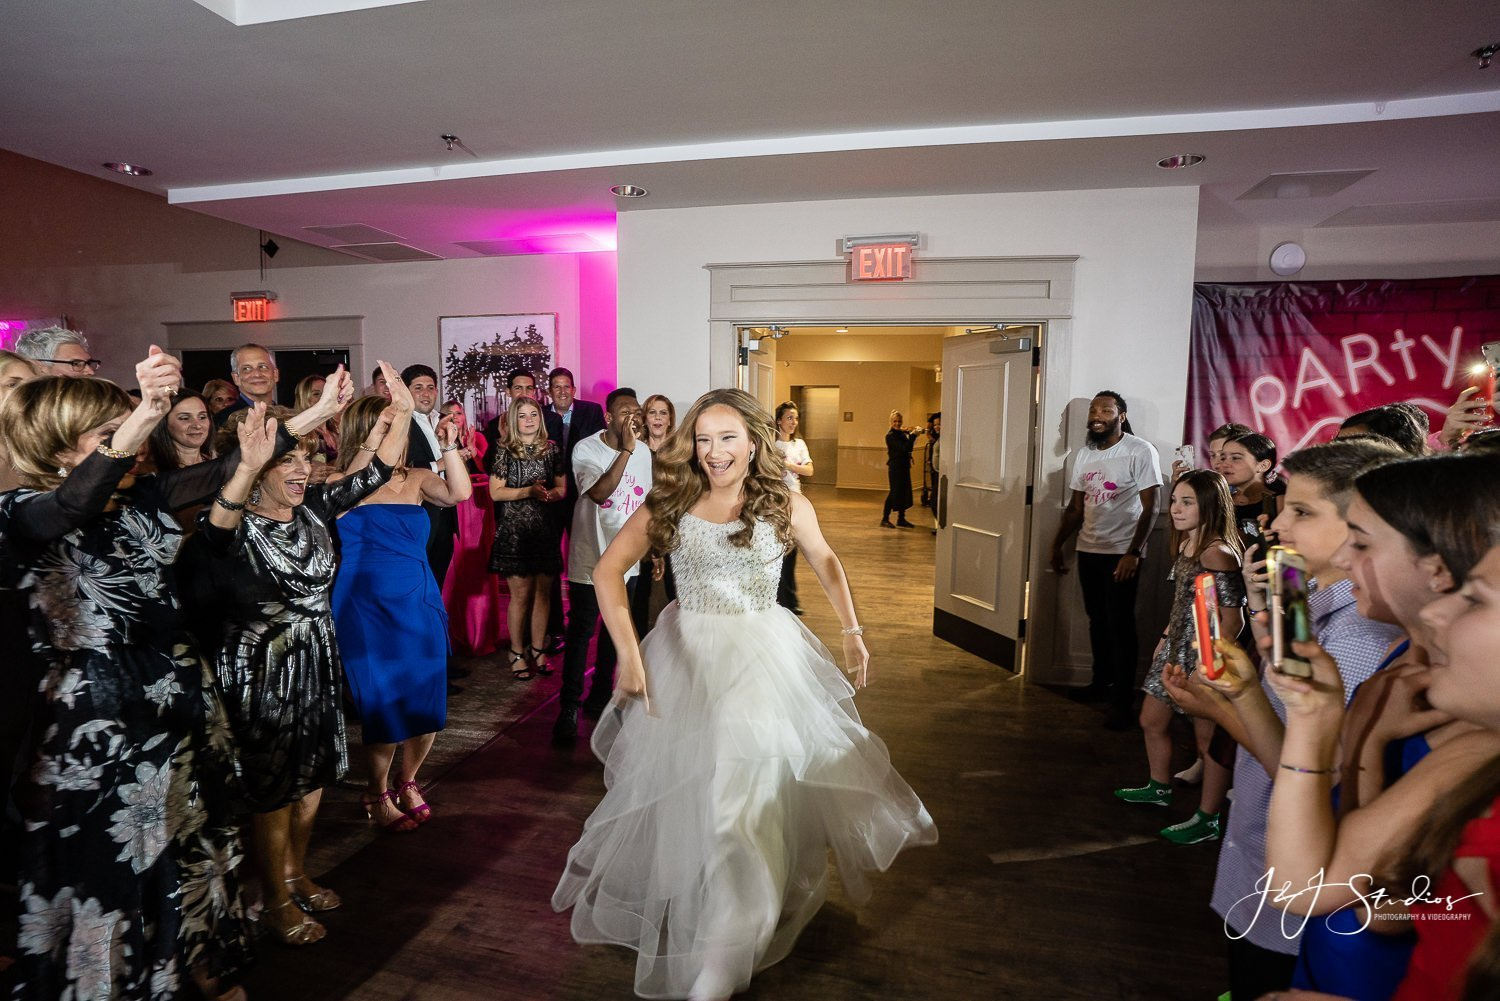 nj bat mitzvah grand entrance